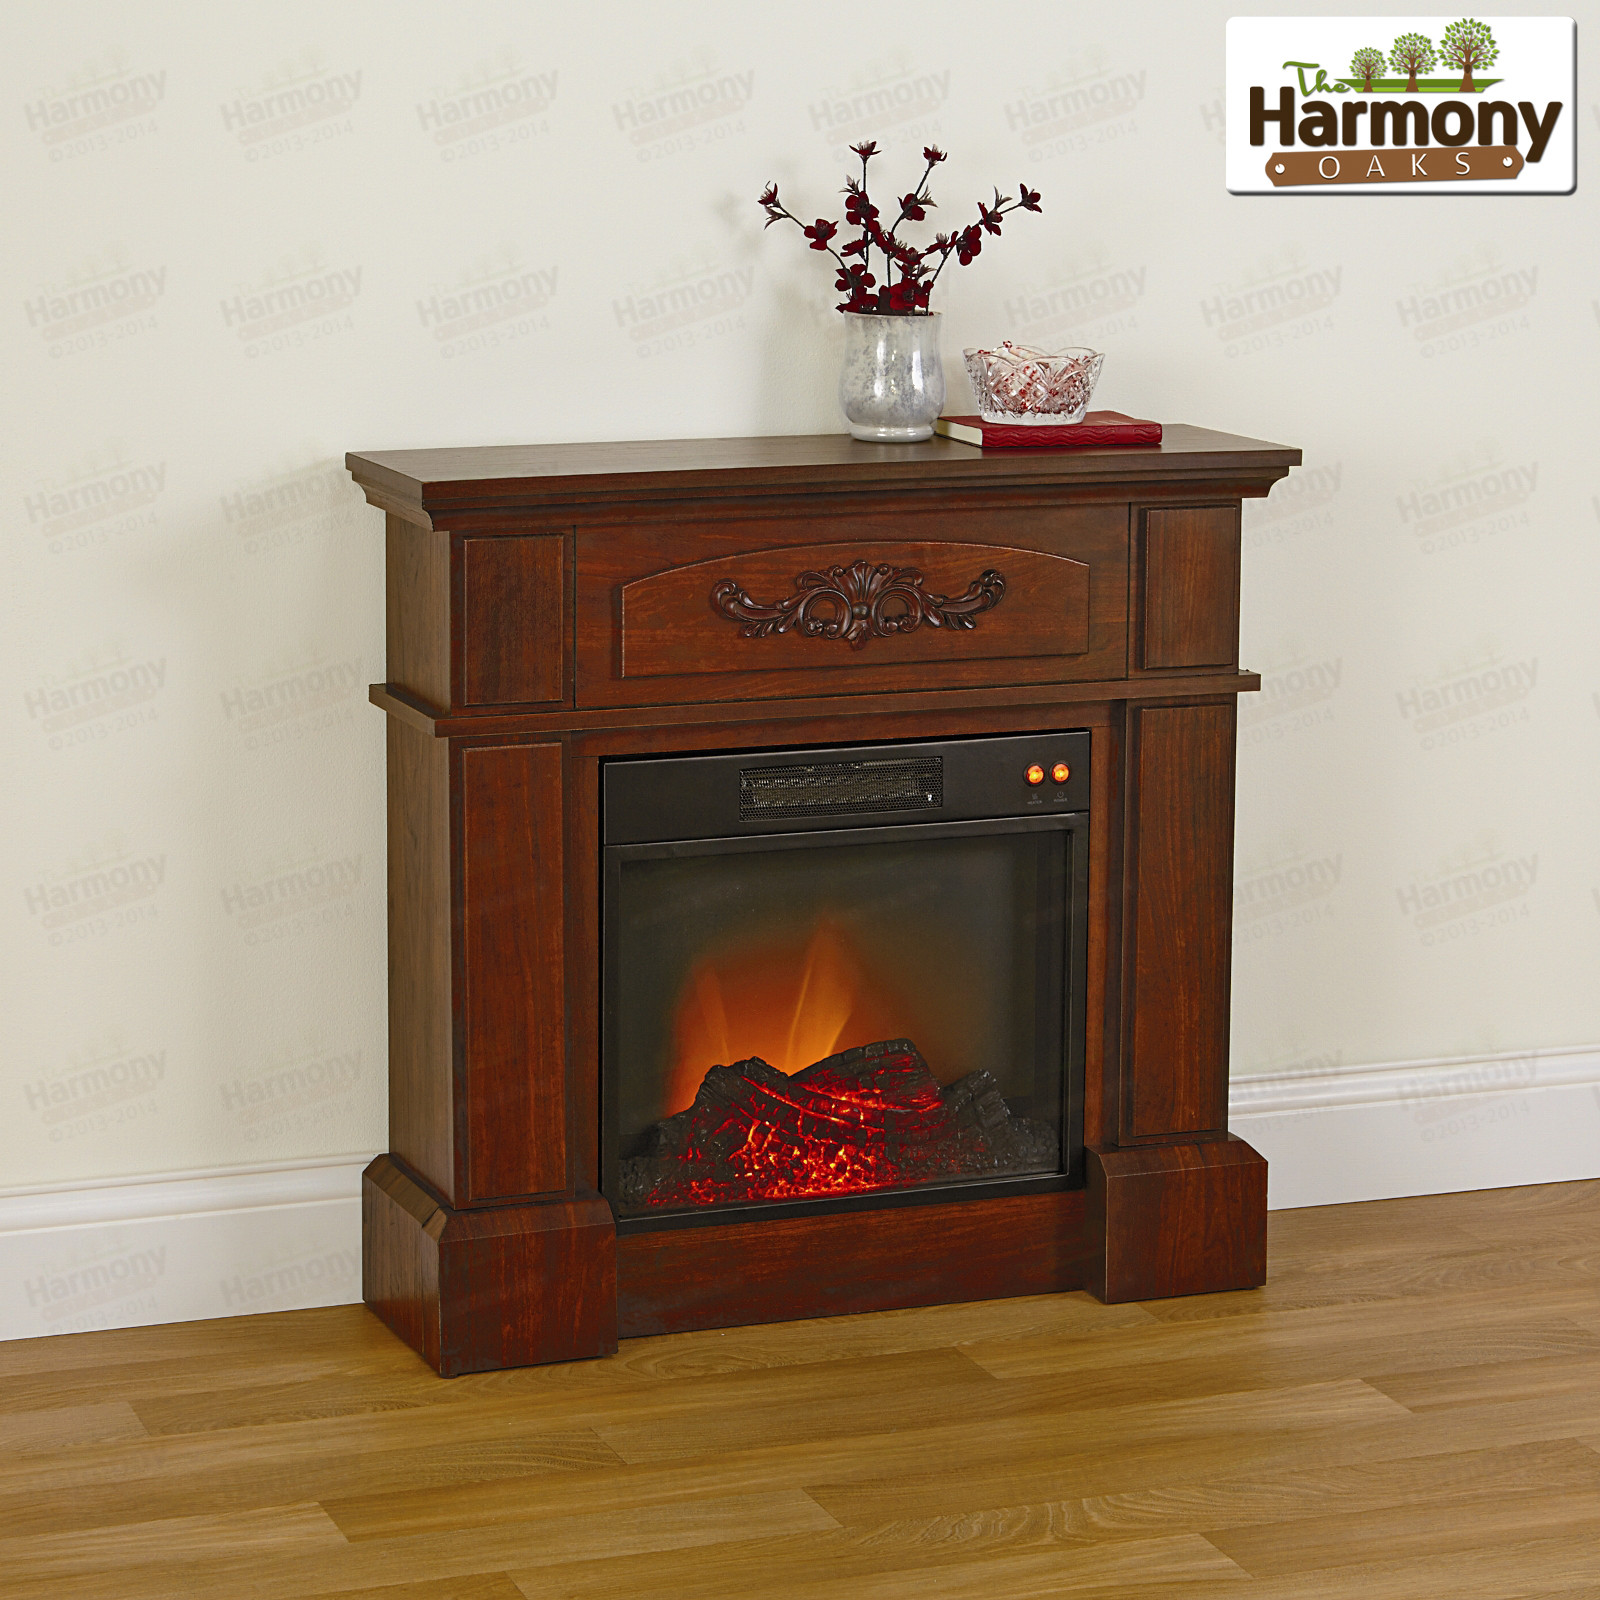 Best ideas about Fireplace Electric Heater . Save or Pin Electric Fireplace Heater Flame Mantle Den Living Room LED Now.